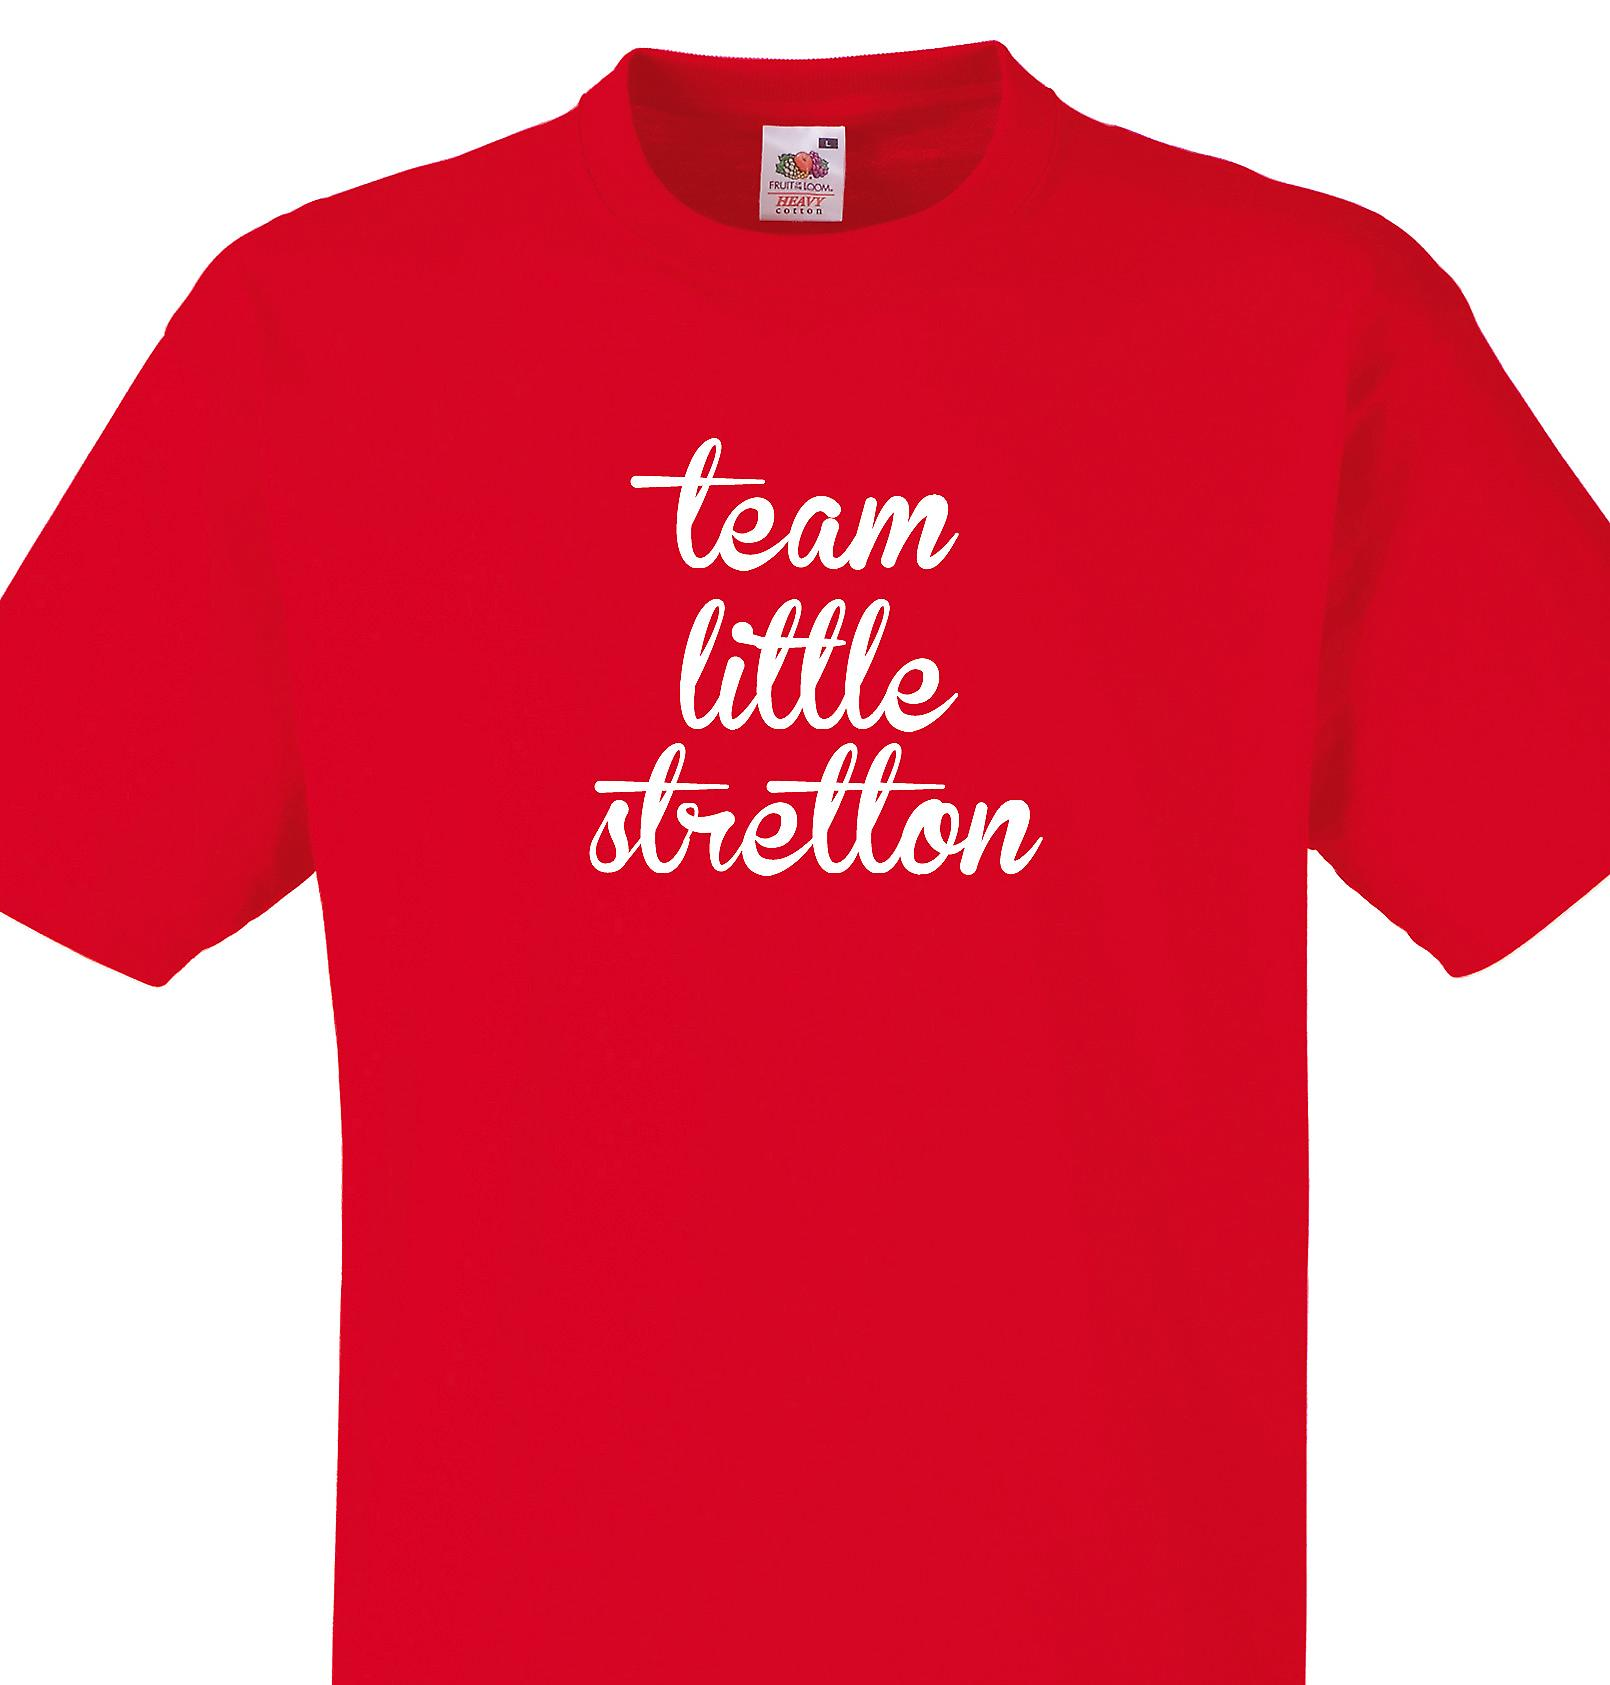 Team Little stretton Red T shirt